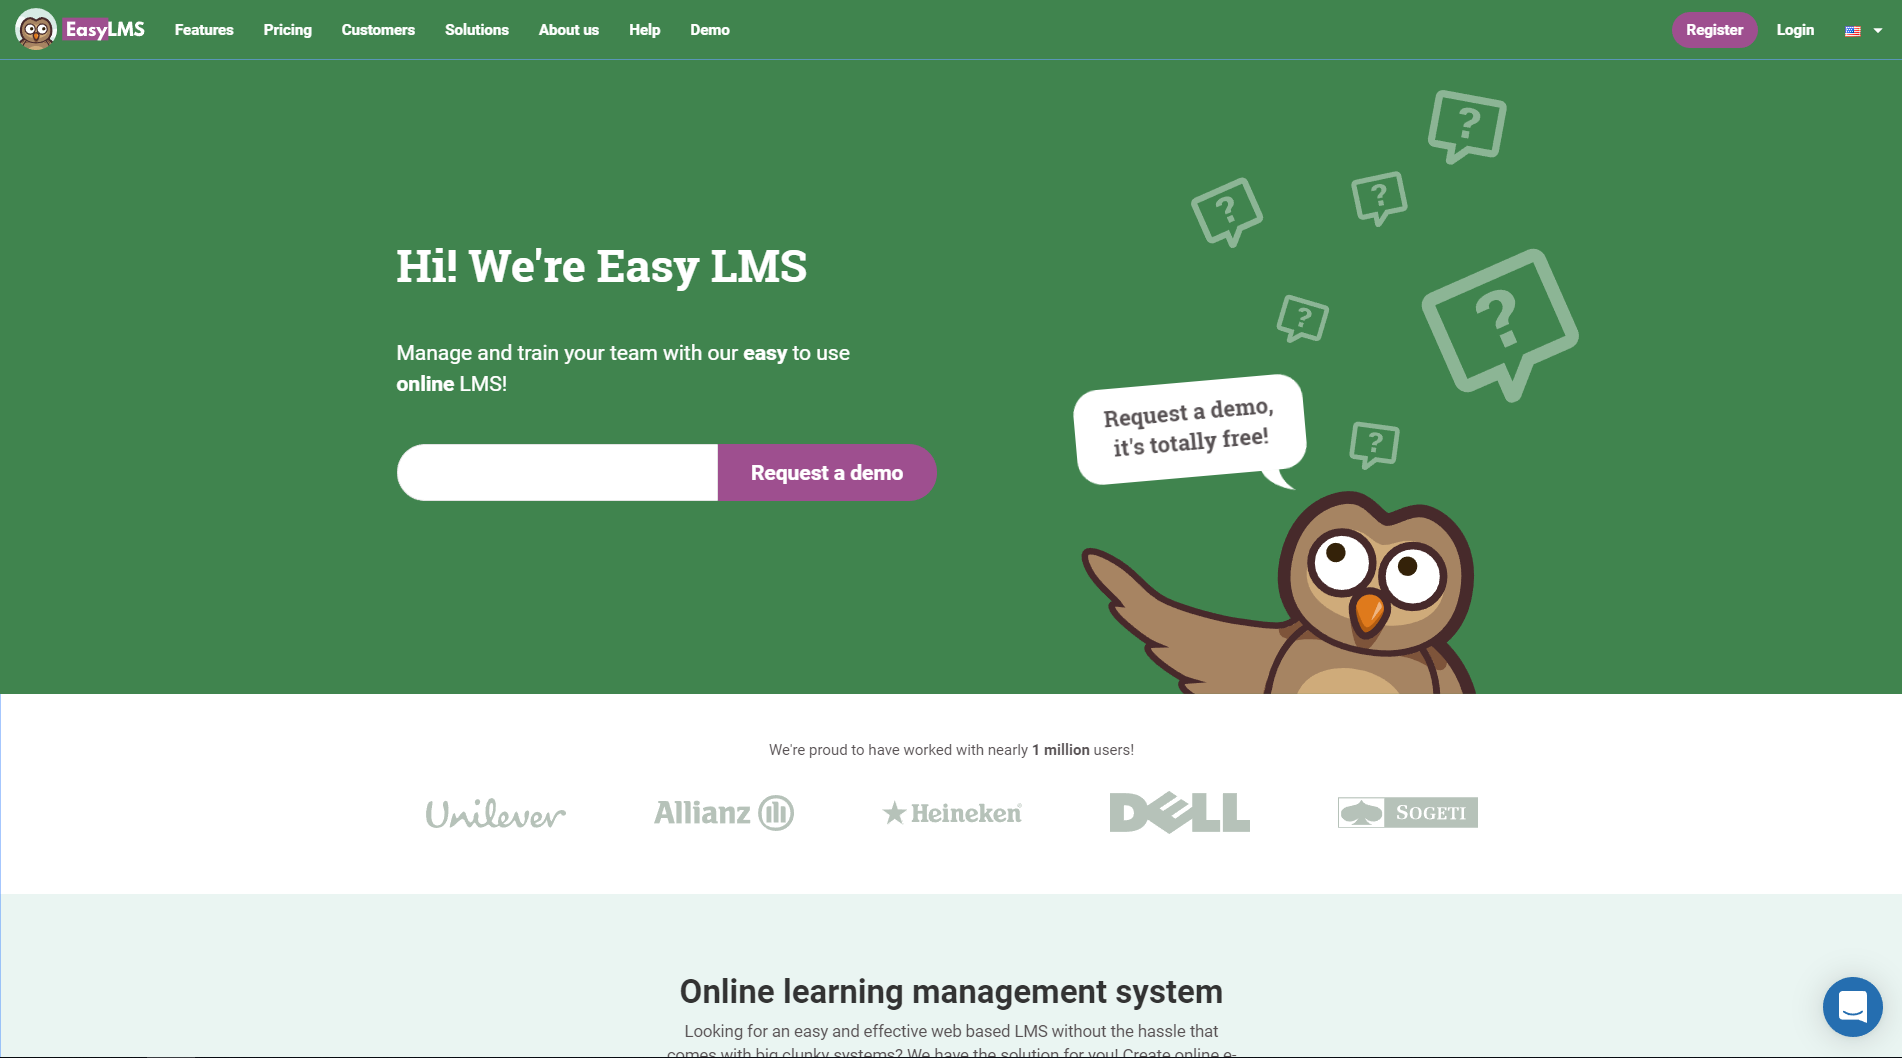 New Easy LMS